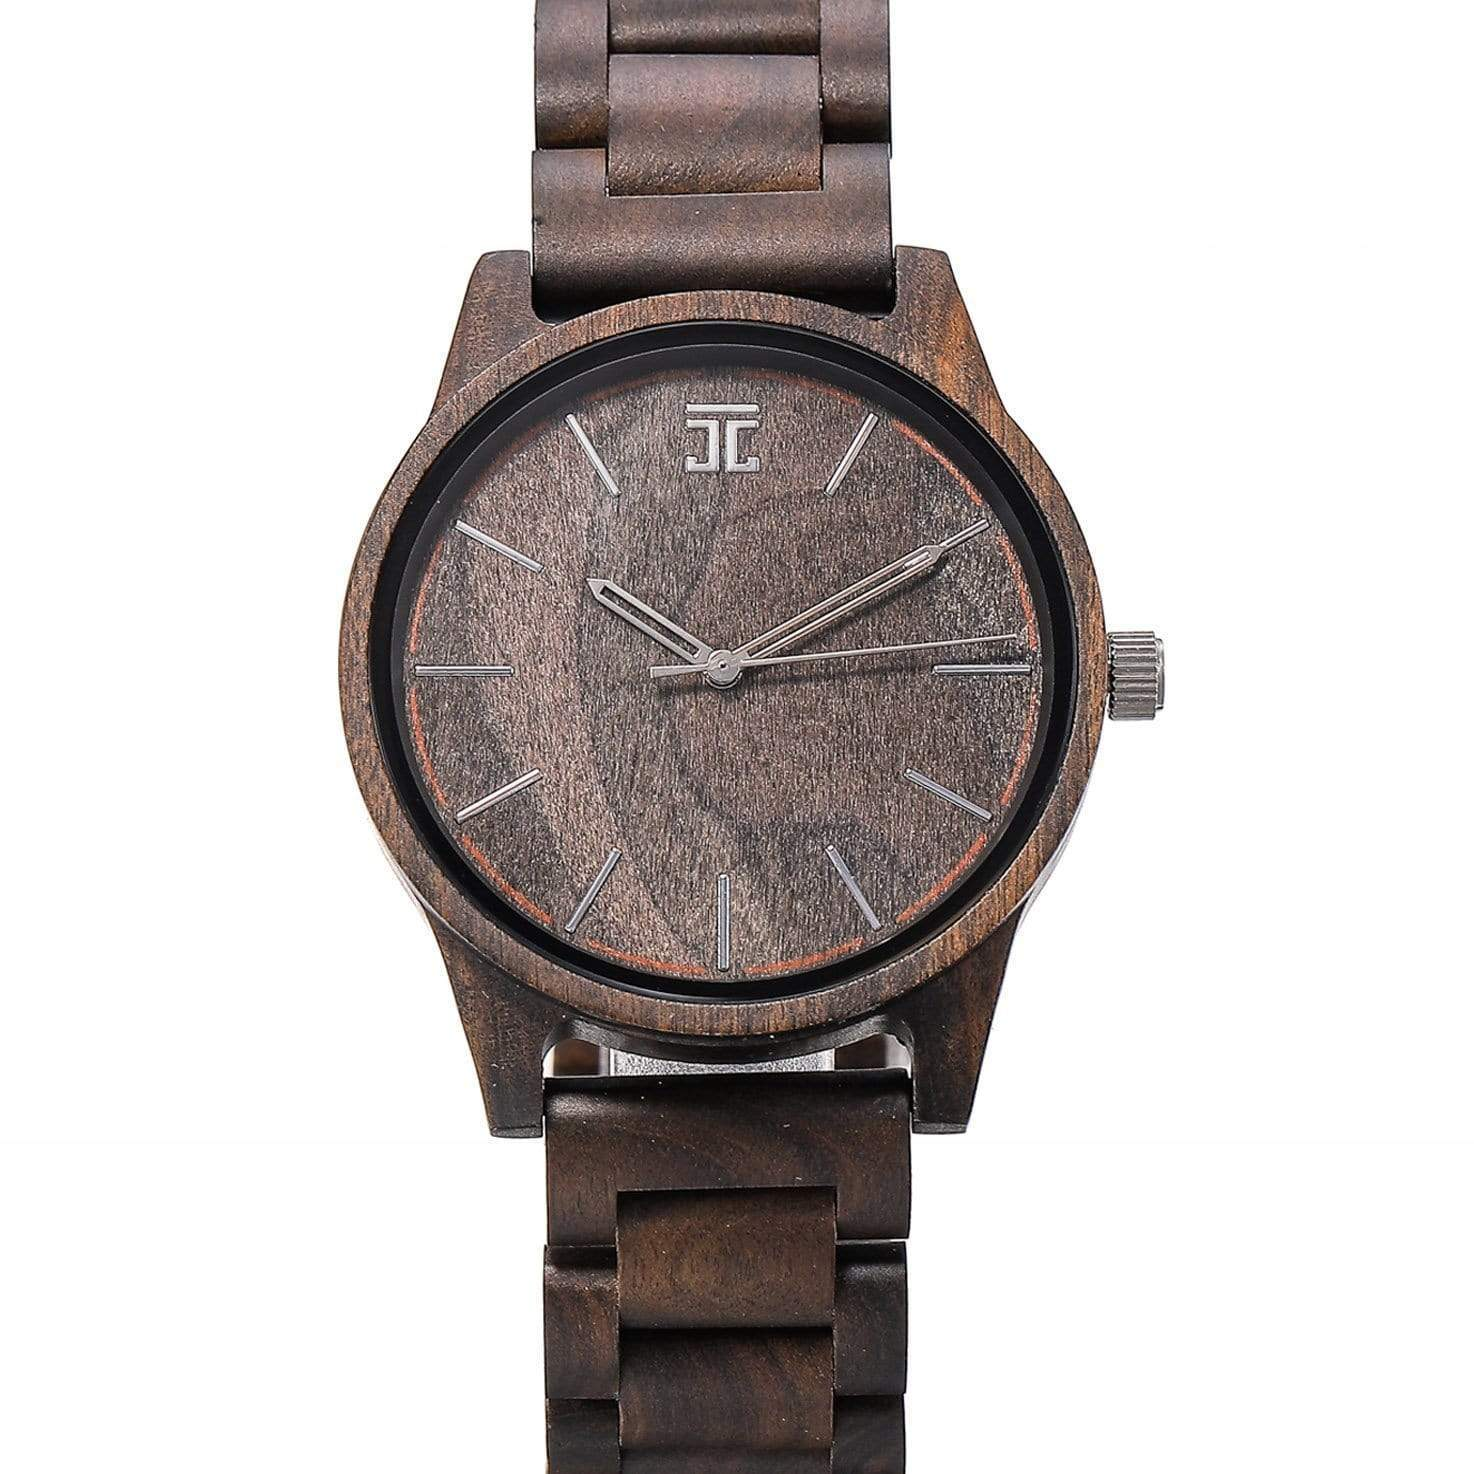 Dark Sandalwood // Woodgrain Dial - Wooden Watches and Sunglasses - Joycoast